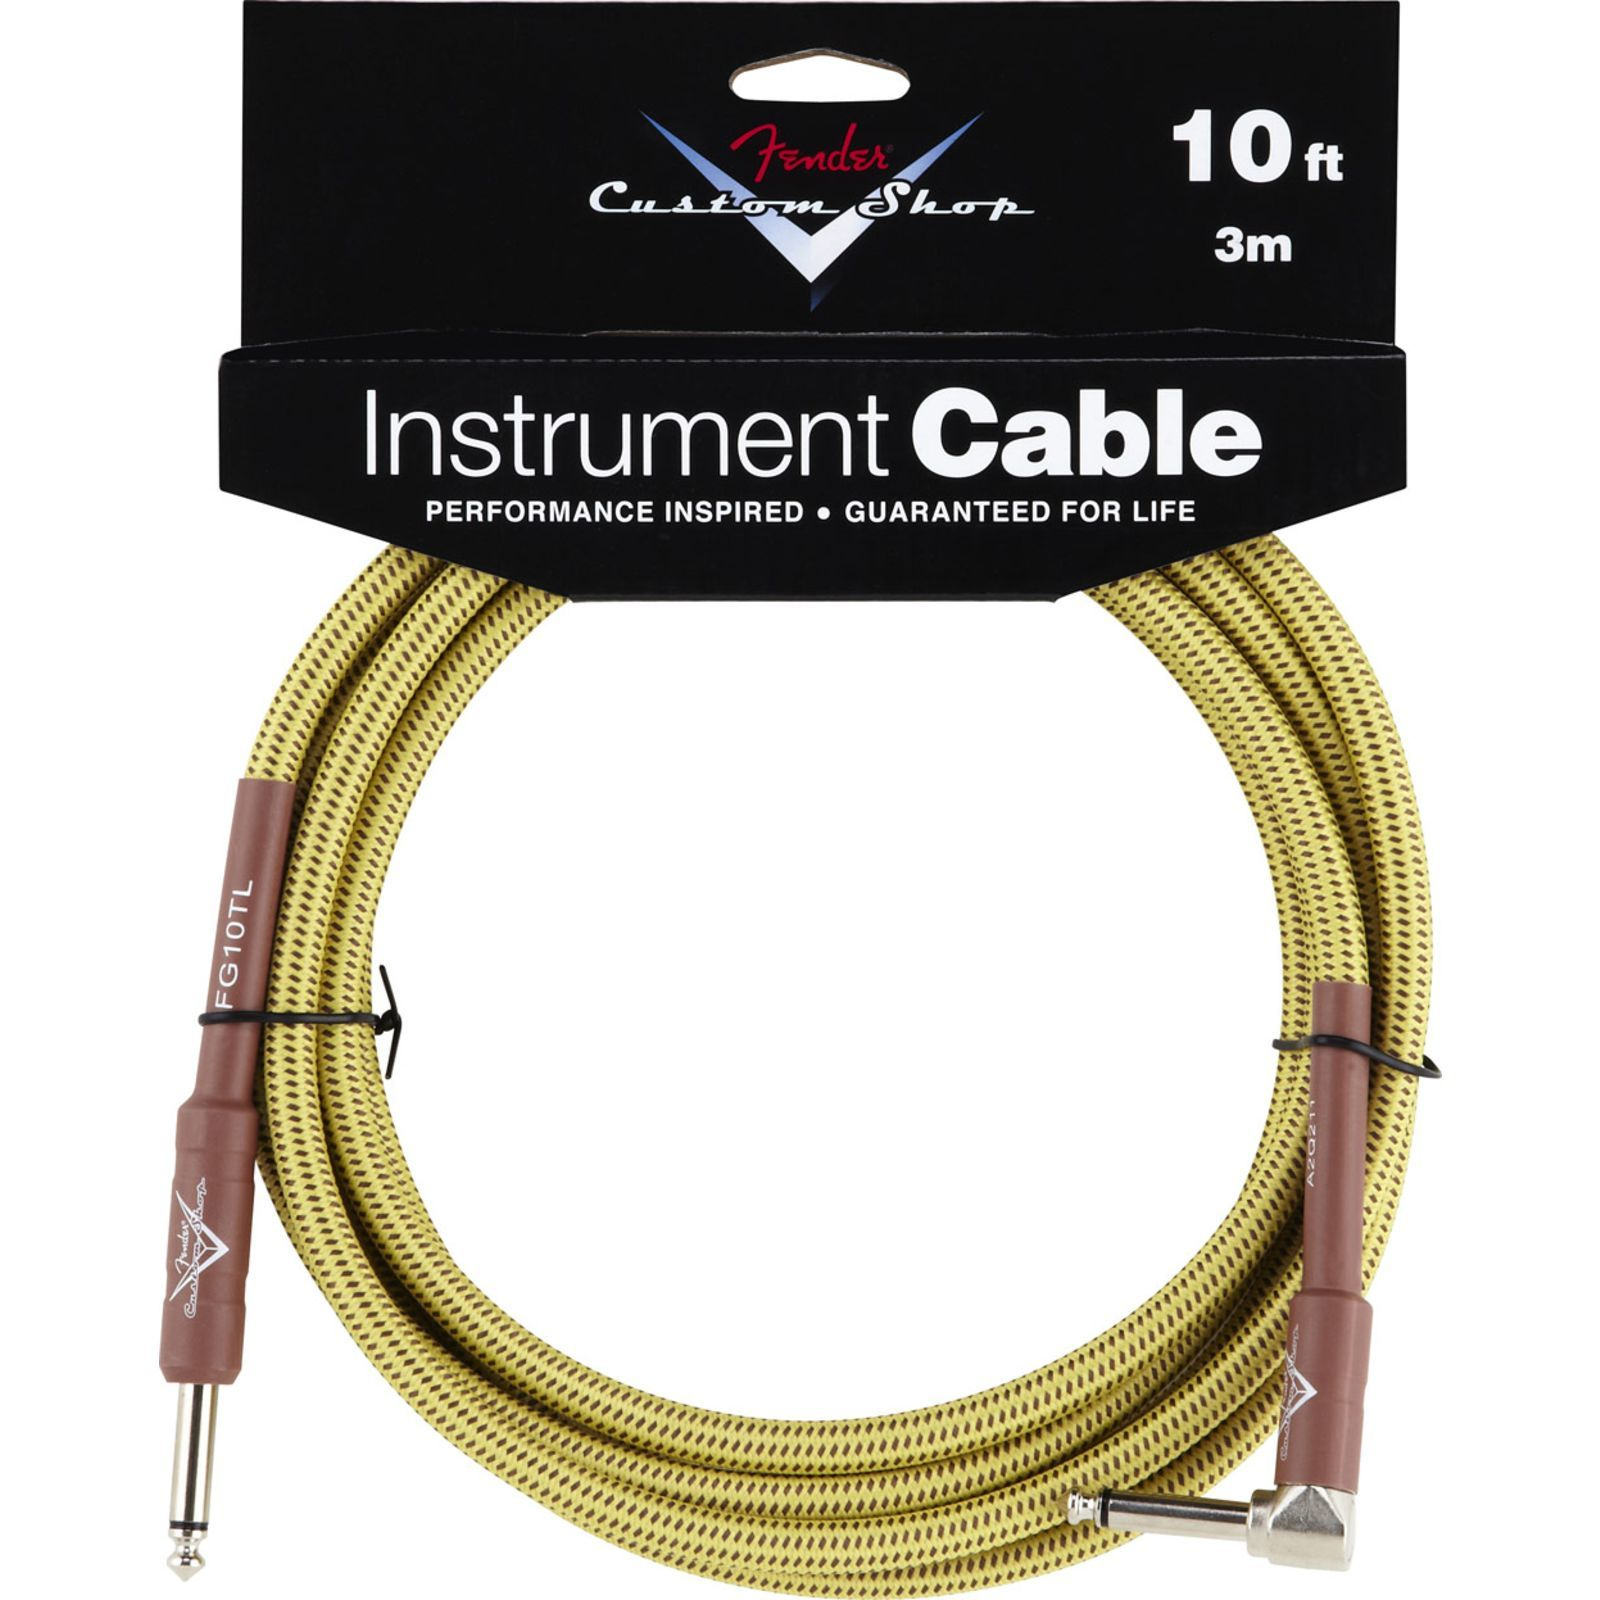 Fender Custom Shop Cable 3m TW Tweed, Kli/WKli Produktbillede